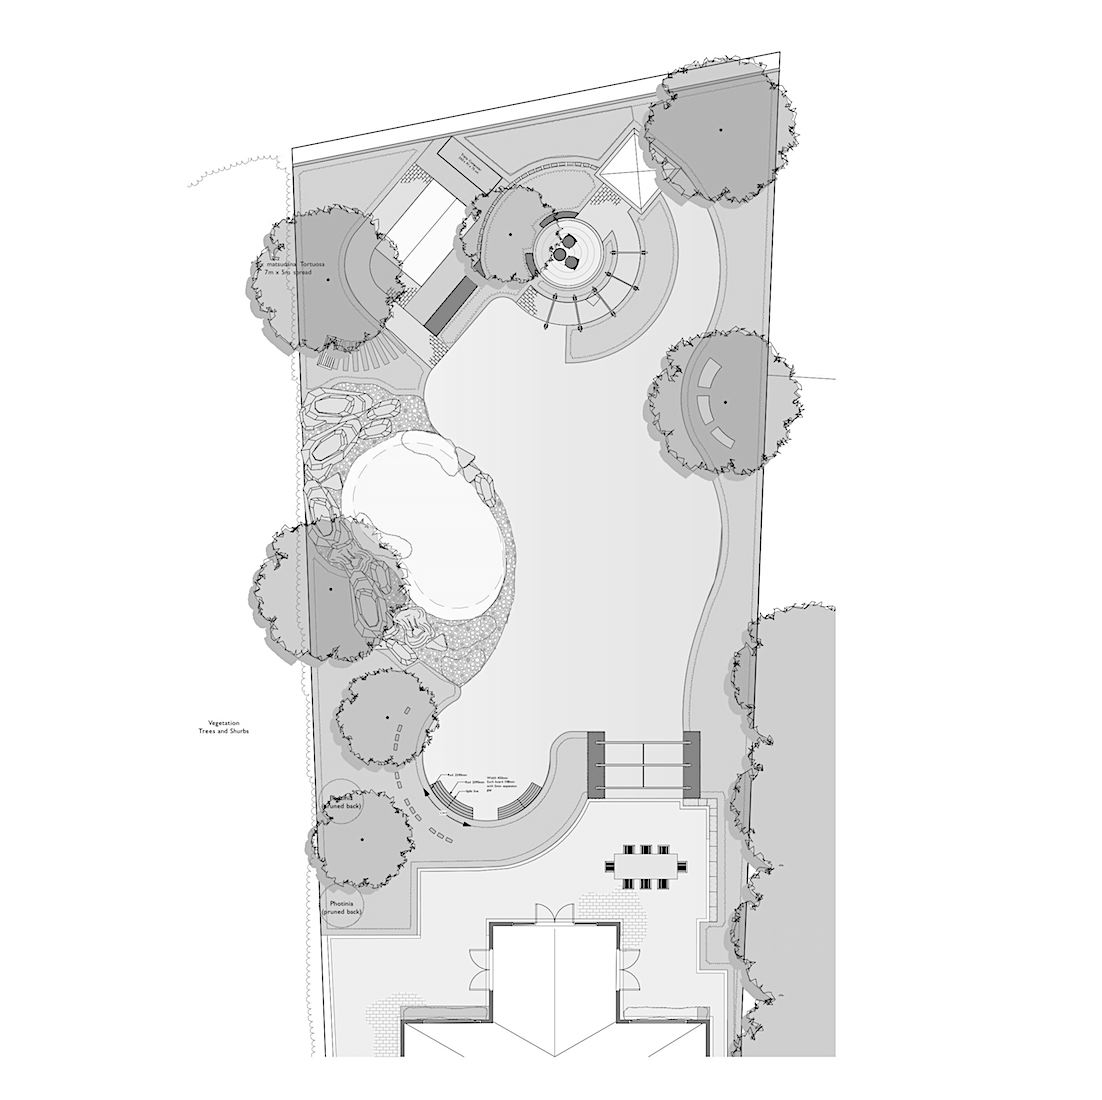 Loxley Design Image 1